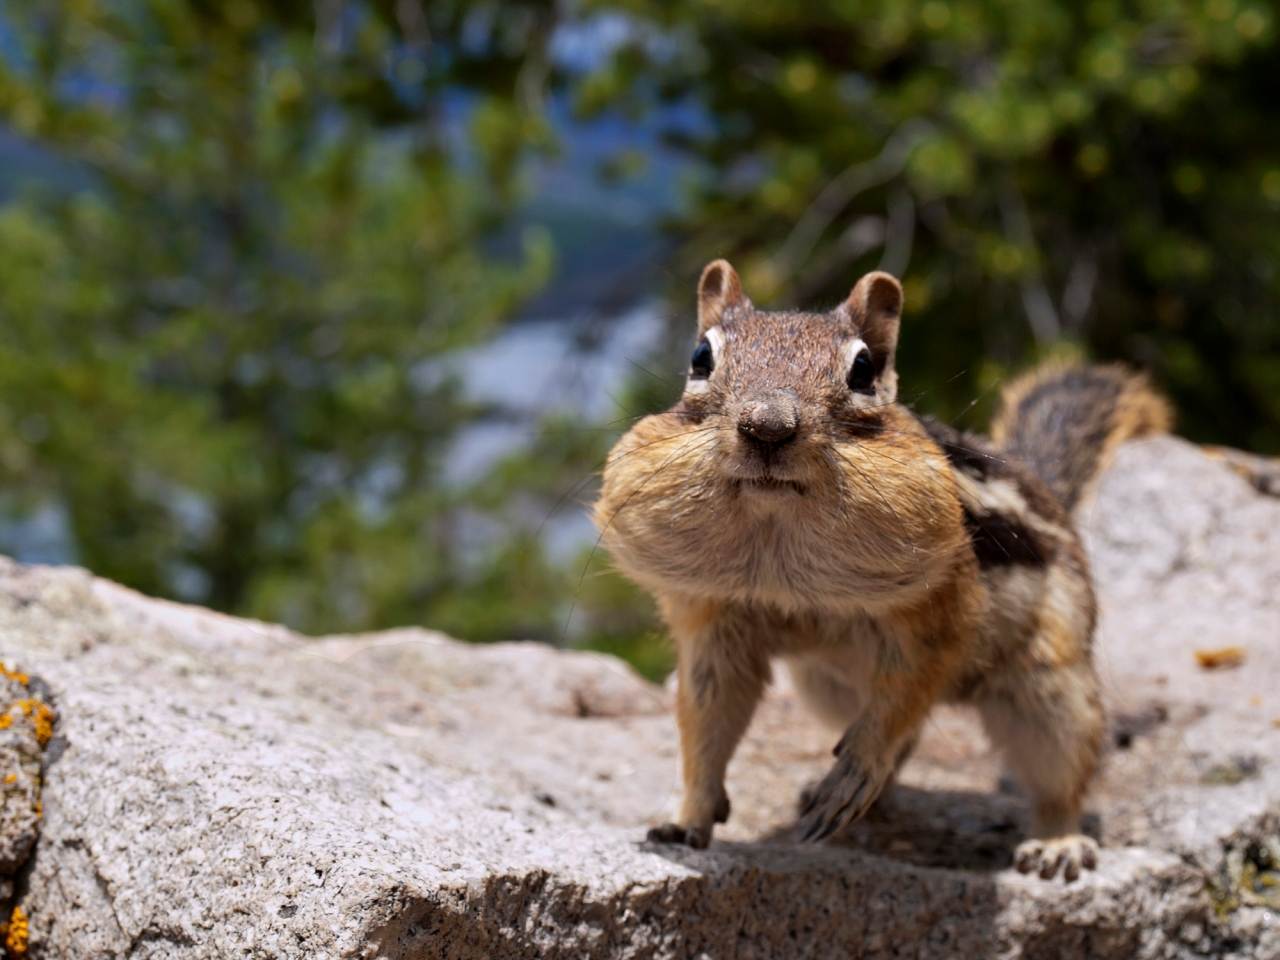 Plague-carrying chipmunks prompt closure of areas around Lake Tahoe